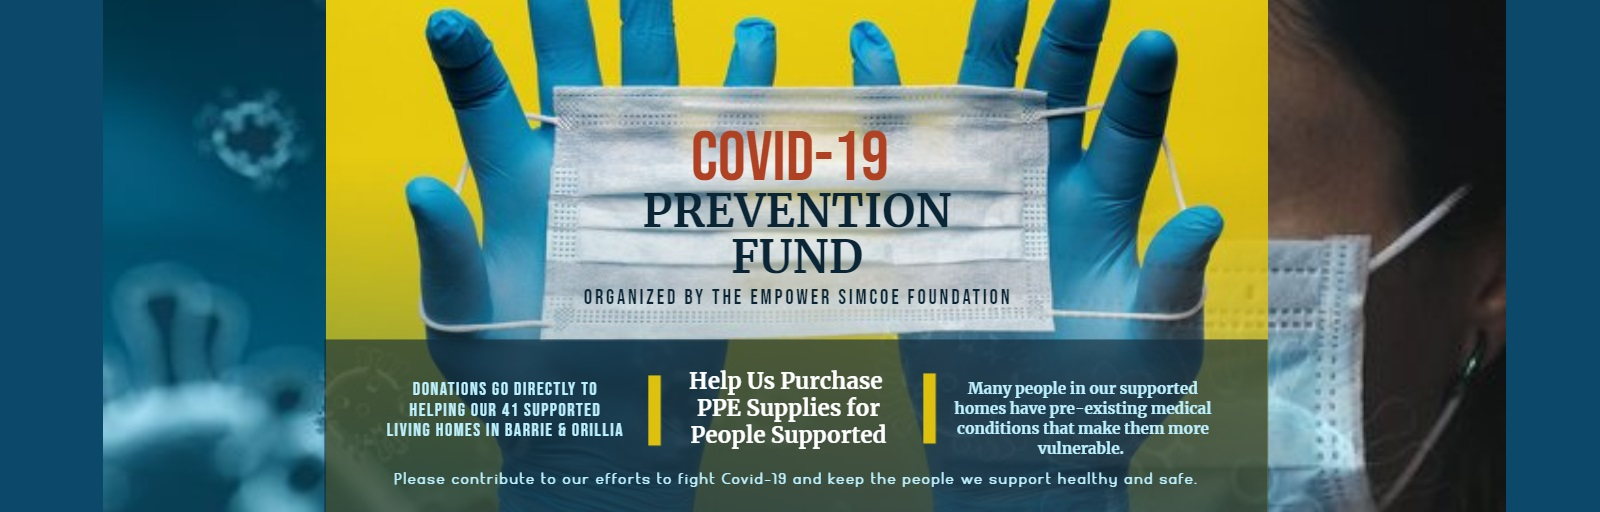 COVID-19 Prevention Fund